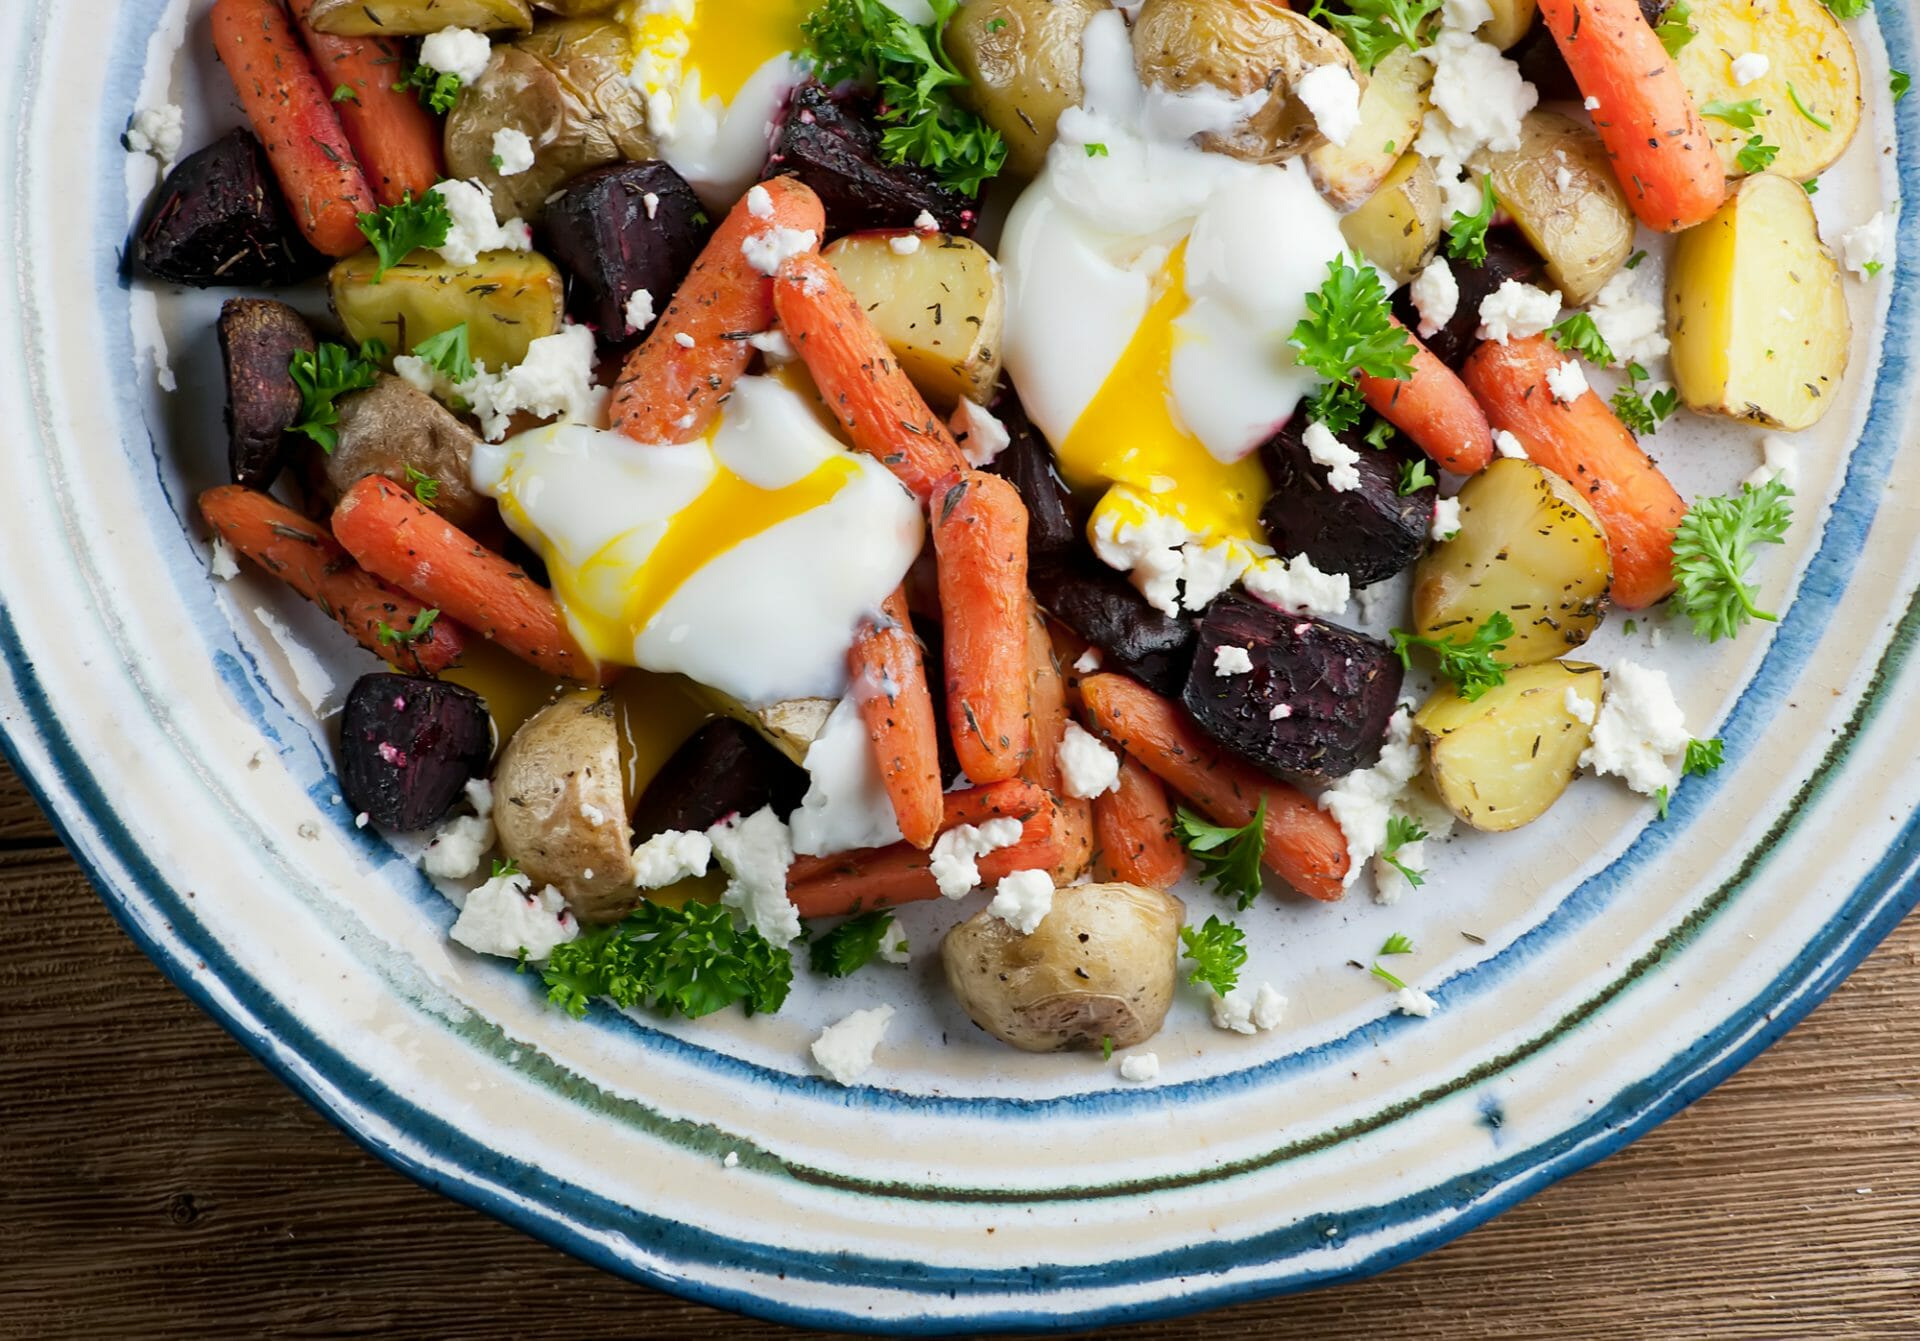 egg salad with roasted vegetables